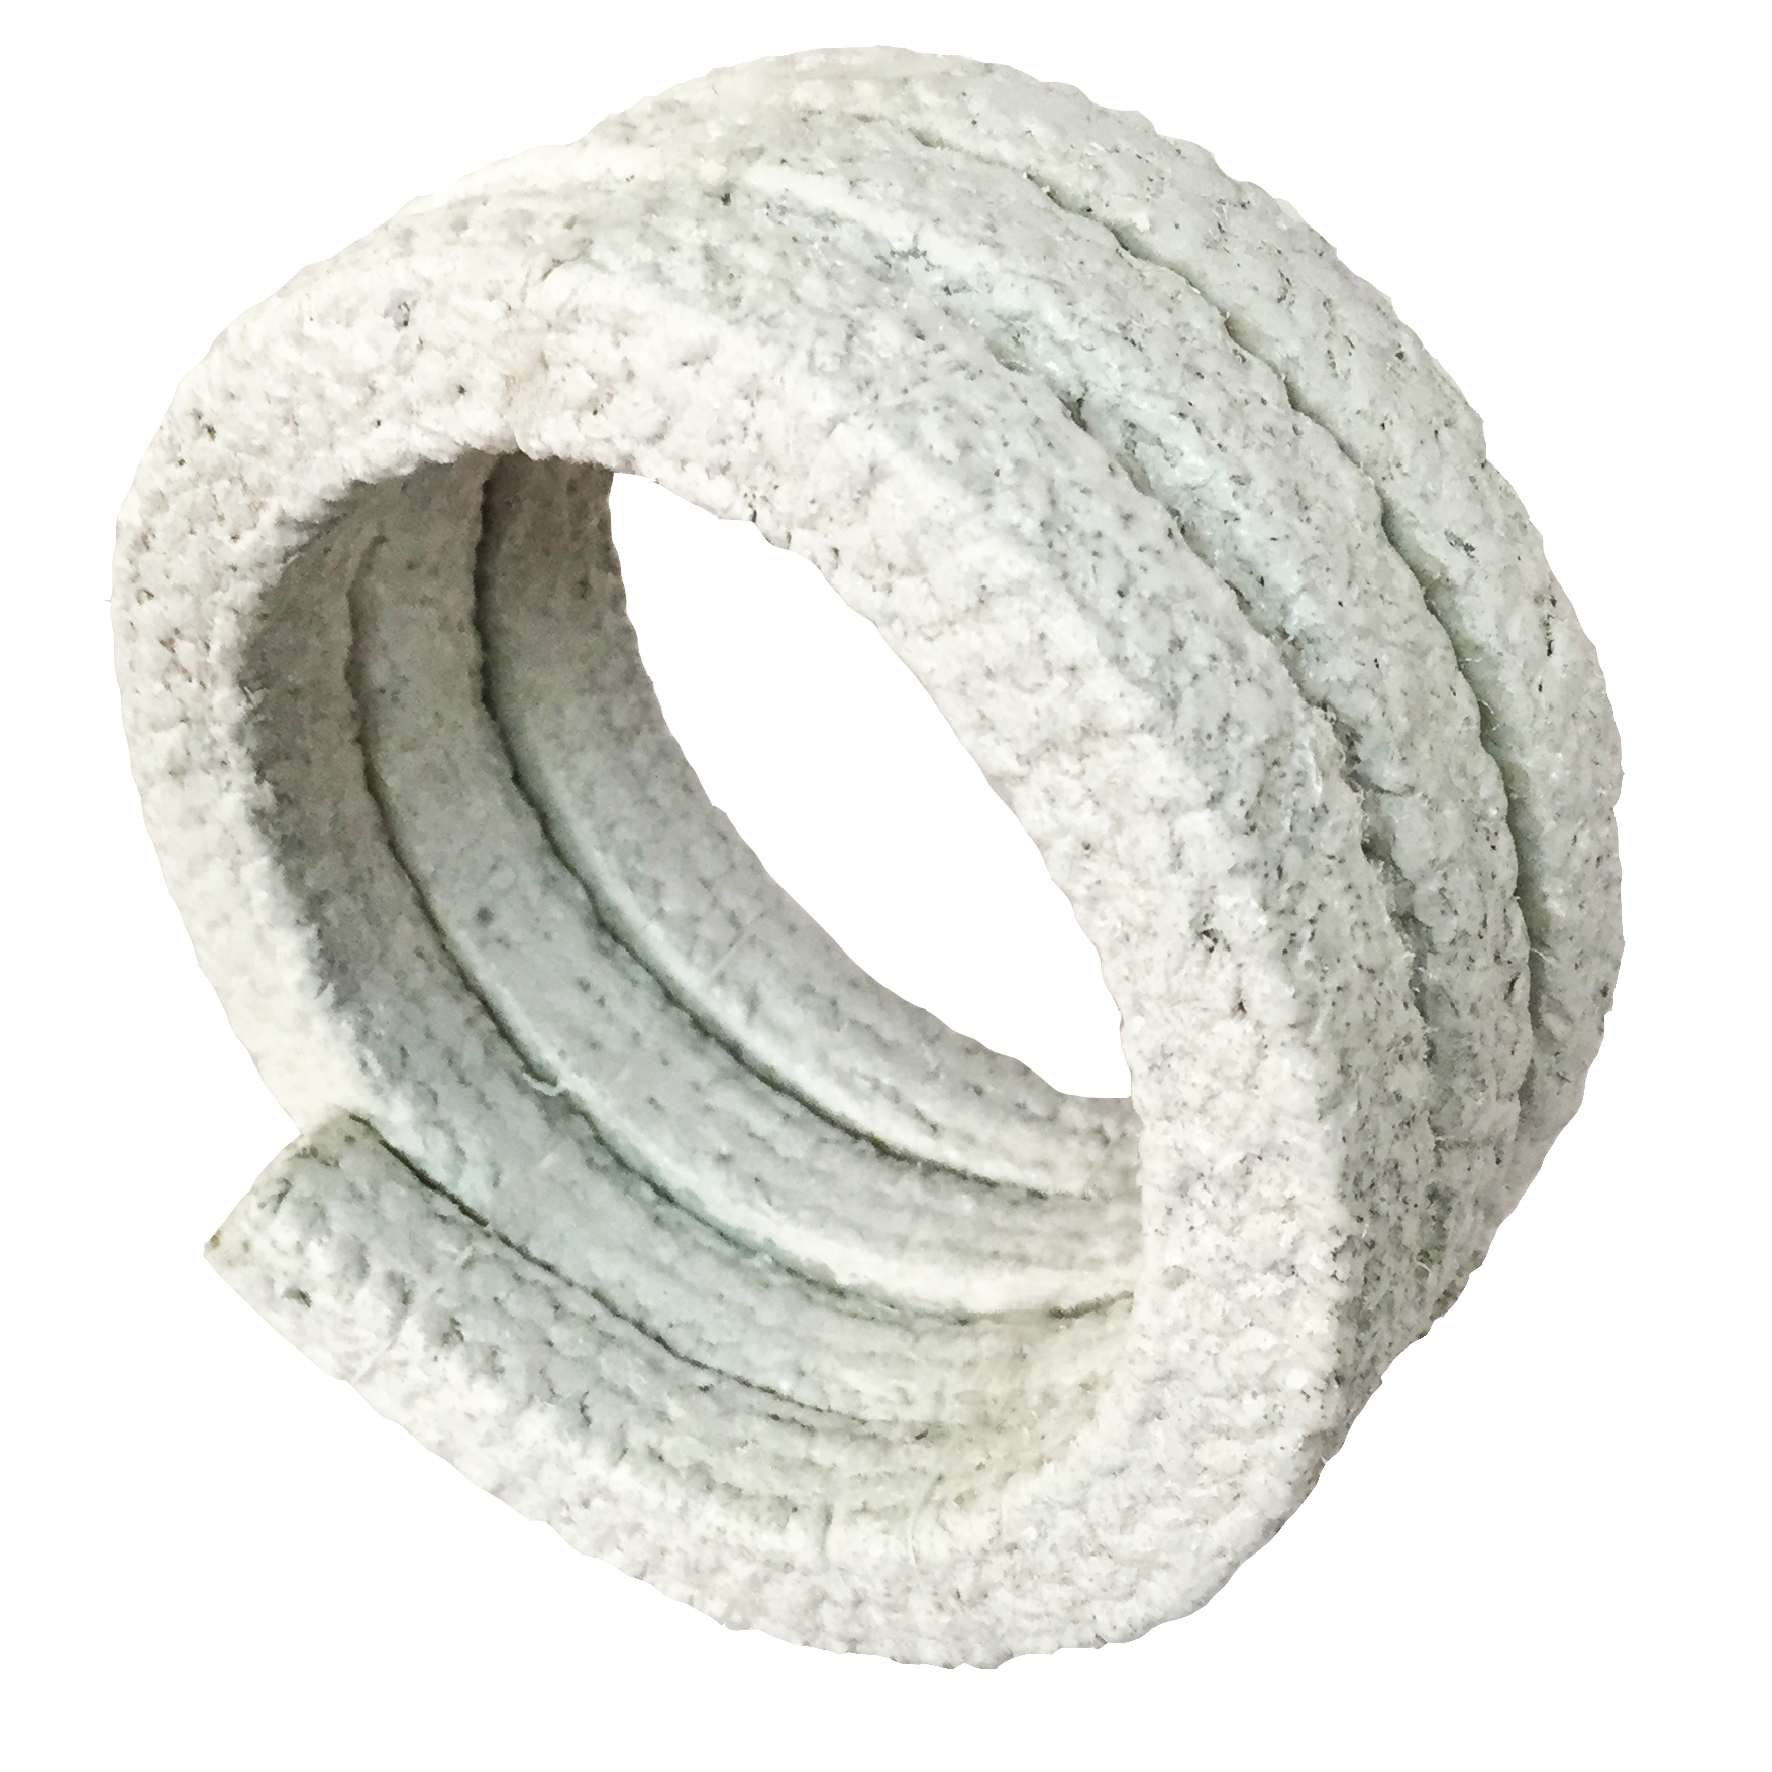 Aramid fibers with corrosion inhibitor and PTFE